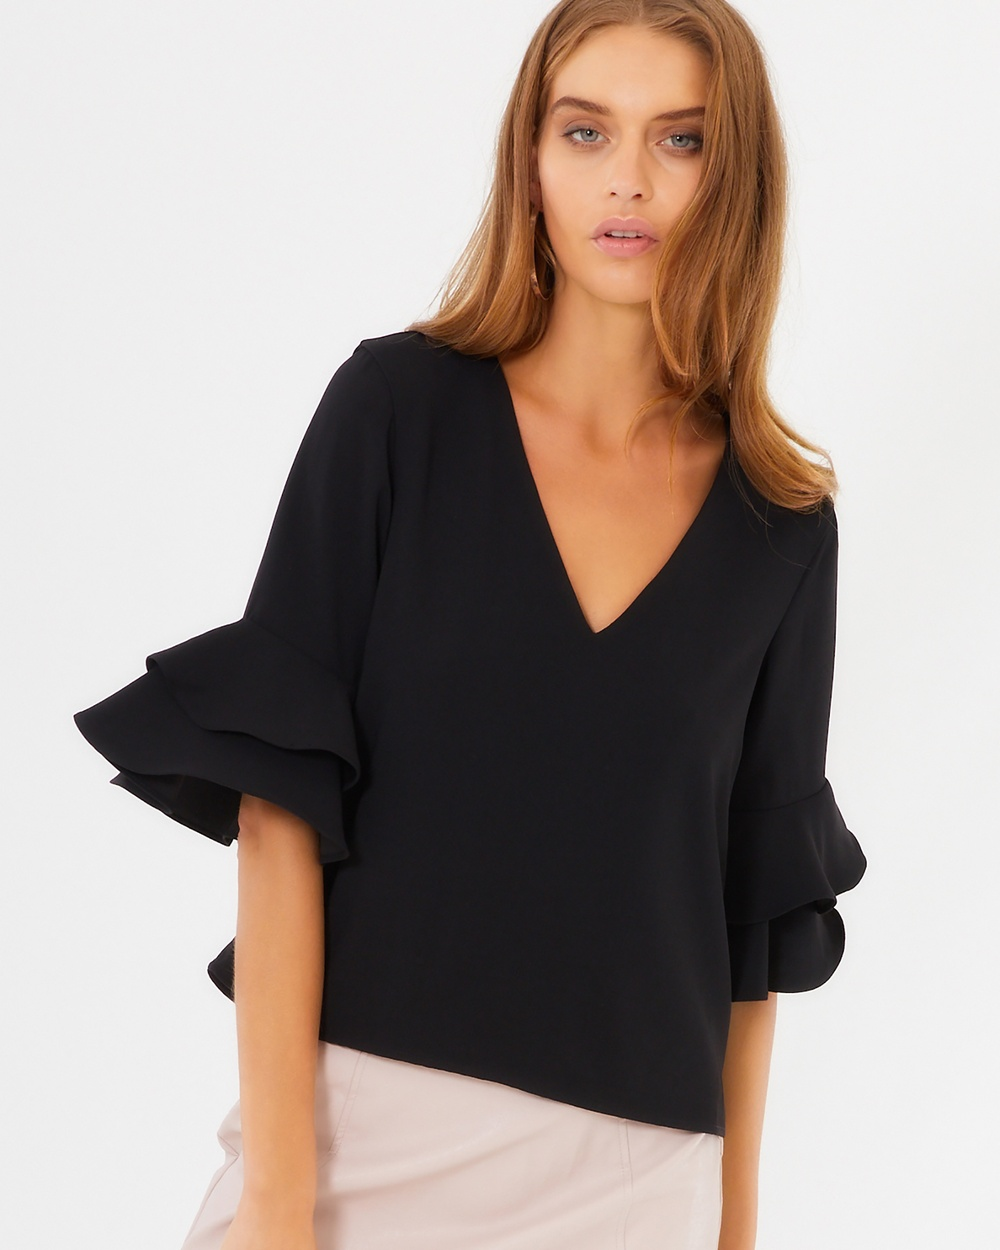 Tussah Hattie Frill Sleeve Top Tops Black Hattie Frill Sleeve Top